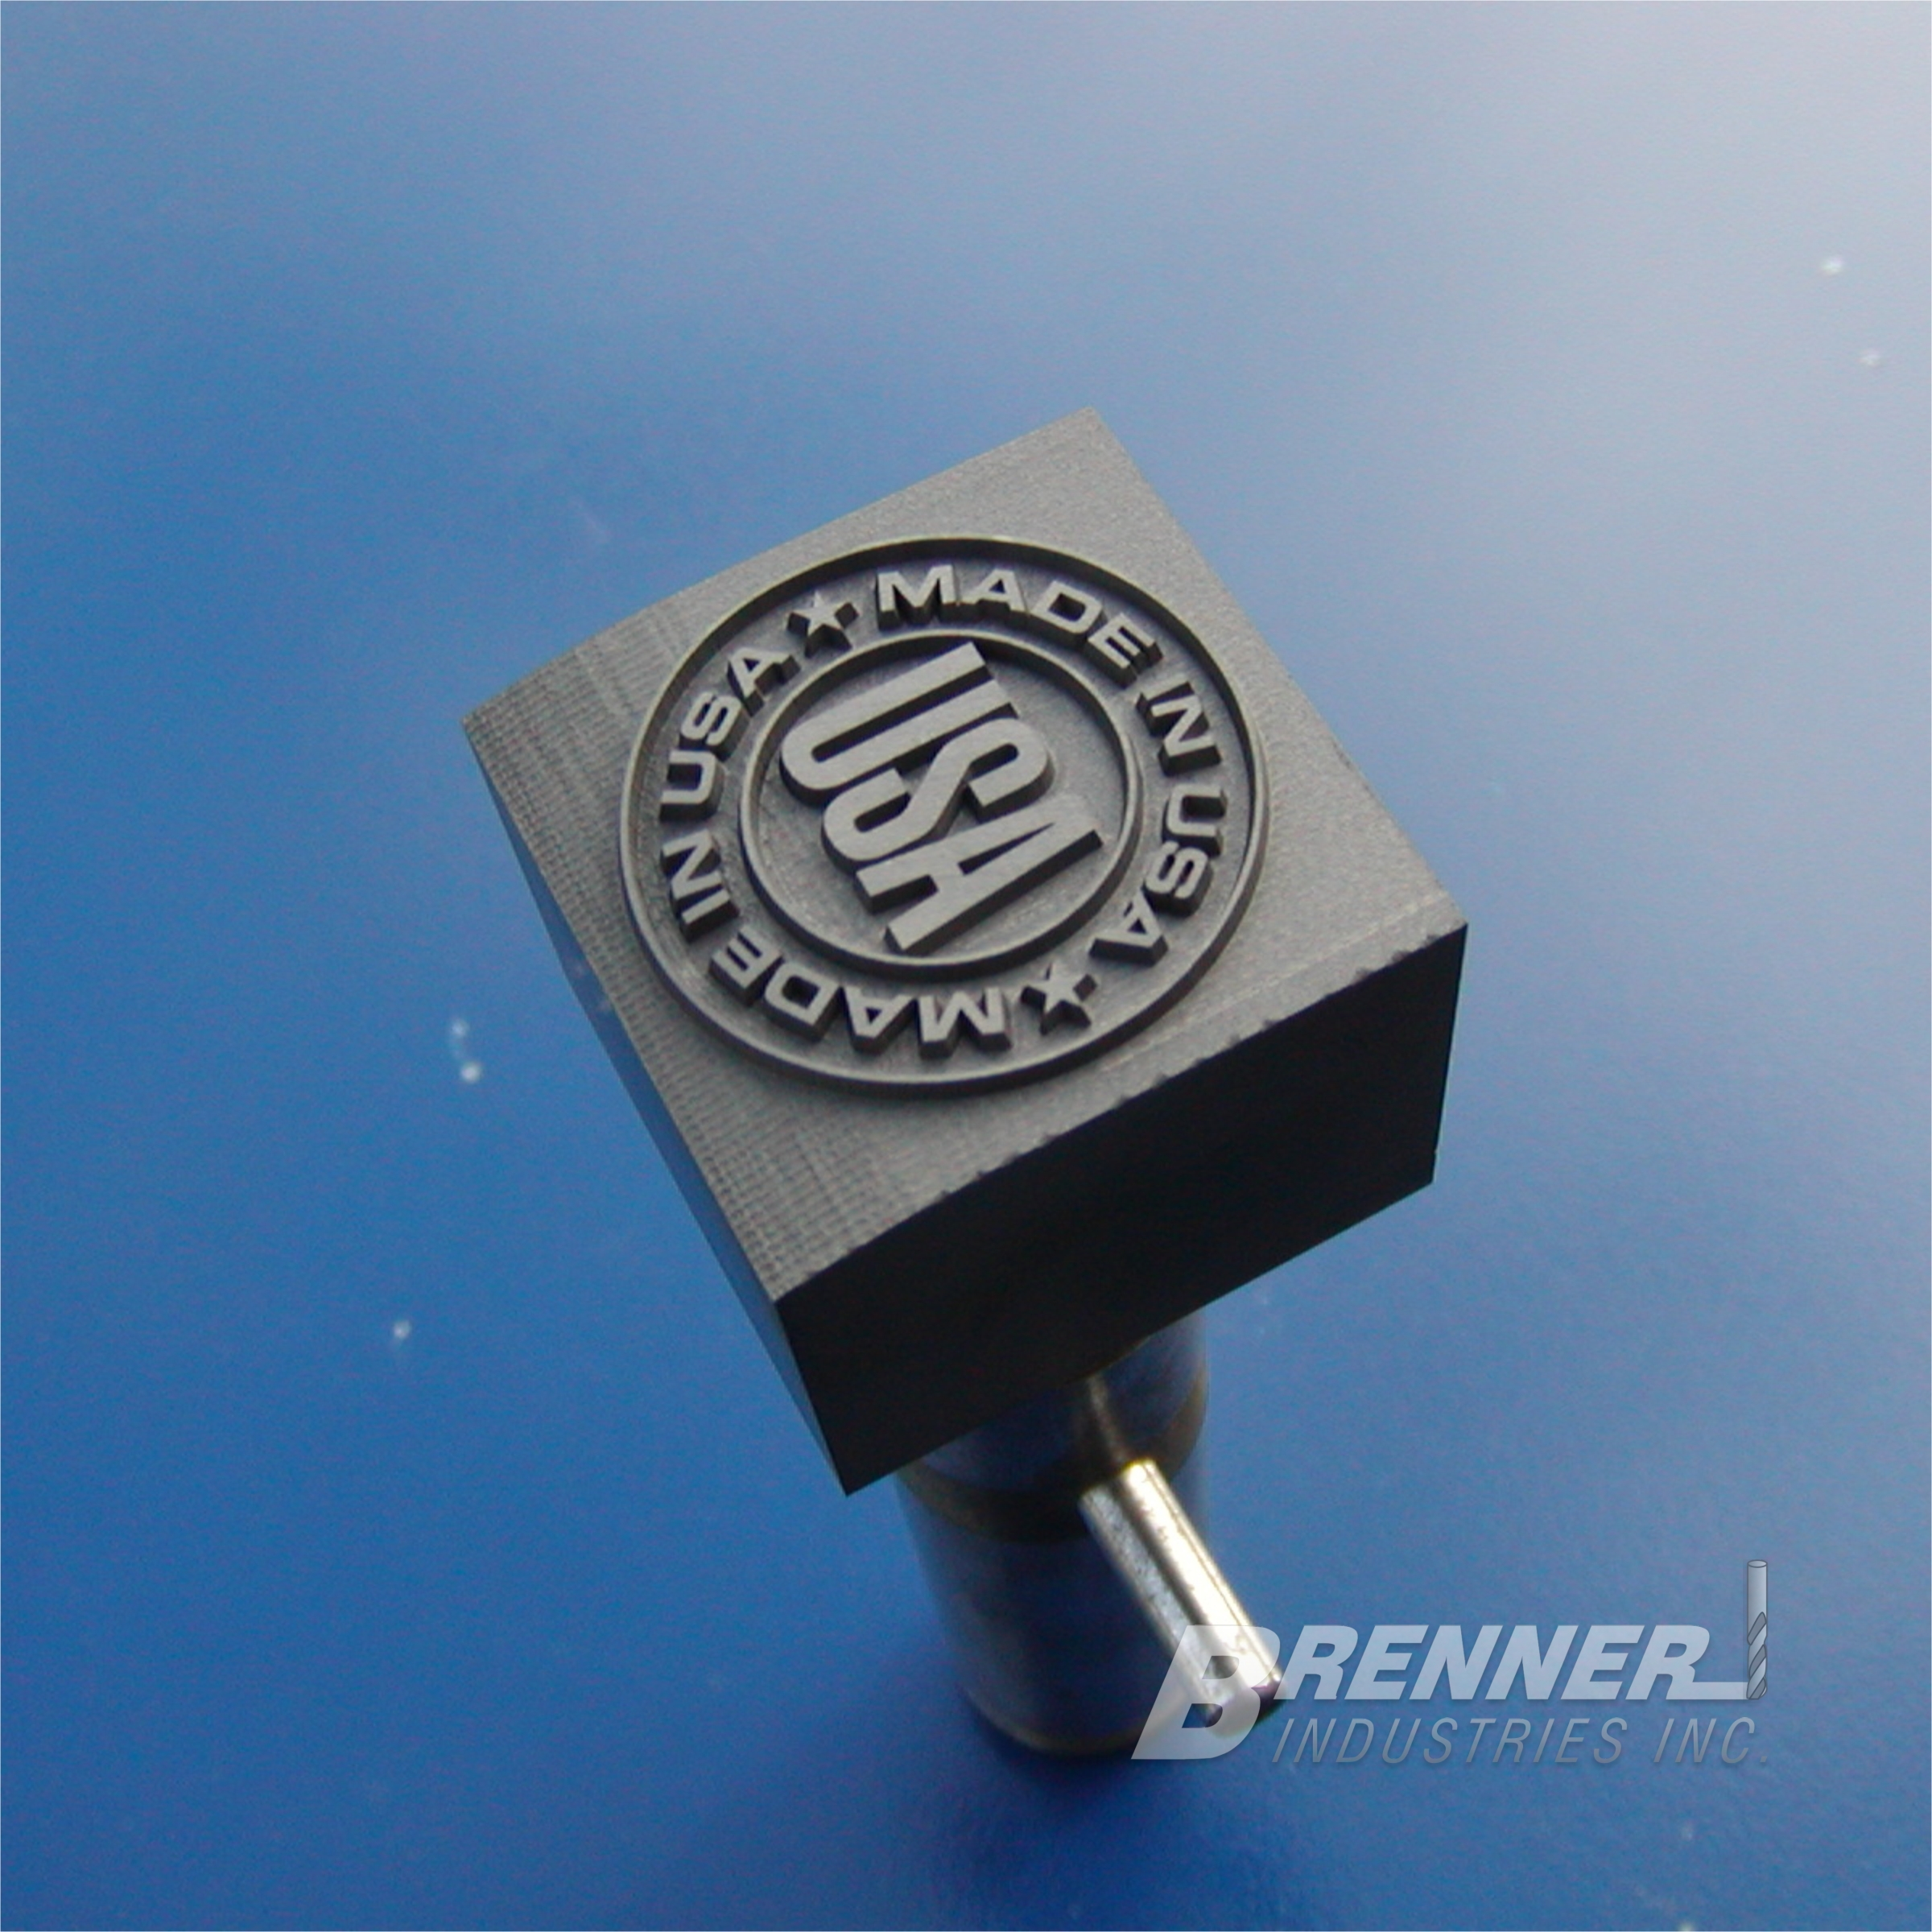 electrode engraving Brenner Industries Industrial Mold Die Tool Stamping Machining Engraving Engravers Service Texture Polish Insert Inserts Components Plastic Injection Forming Metal Working Forging Cast Casting Castings Automotive Firearm Agricultural Cookware Marking Identification ID I.D. Part Number Logo Revision Brand Branding OEM Artwork Vector Company OEM O.E.M. Manufacturing Manufacturers Association Guild CNC EDM mill milling milled Hardened tool steel CMP PM A2 D2 S7 M4 A-2 D-2 S-7 M-4 DC-53 DC53 rapid ton tonne tonnage press draw blank blanking tooling production high multiple cavity revision core pin pins ejector instruction instructions communication communications words cutting cutter cutters hardmilling aluminum brass metal steel copper bronze work workers USA U.S.A. Milwaukee Wisconsin WI MKE Journeyman CAD CAM MasterCAM SolidWorks Master Solid 3D three dimensional modeling model direct